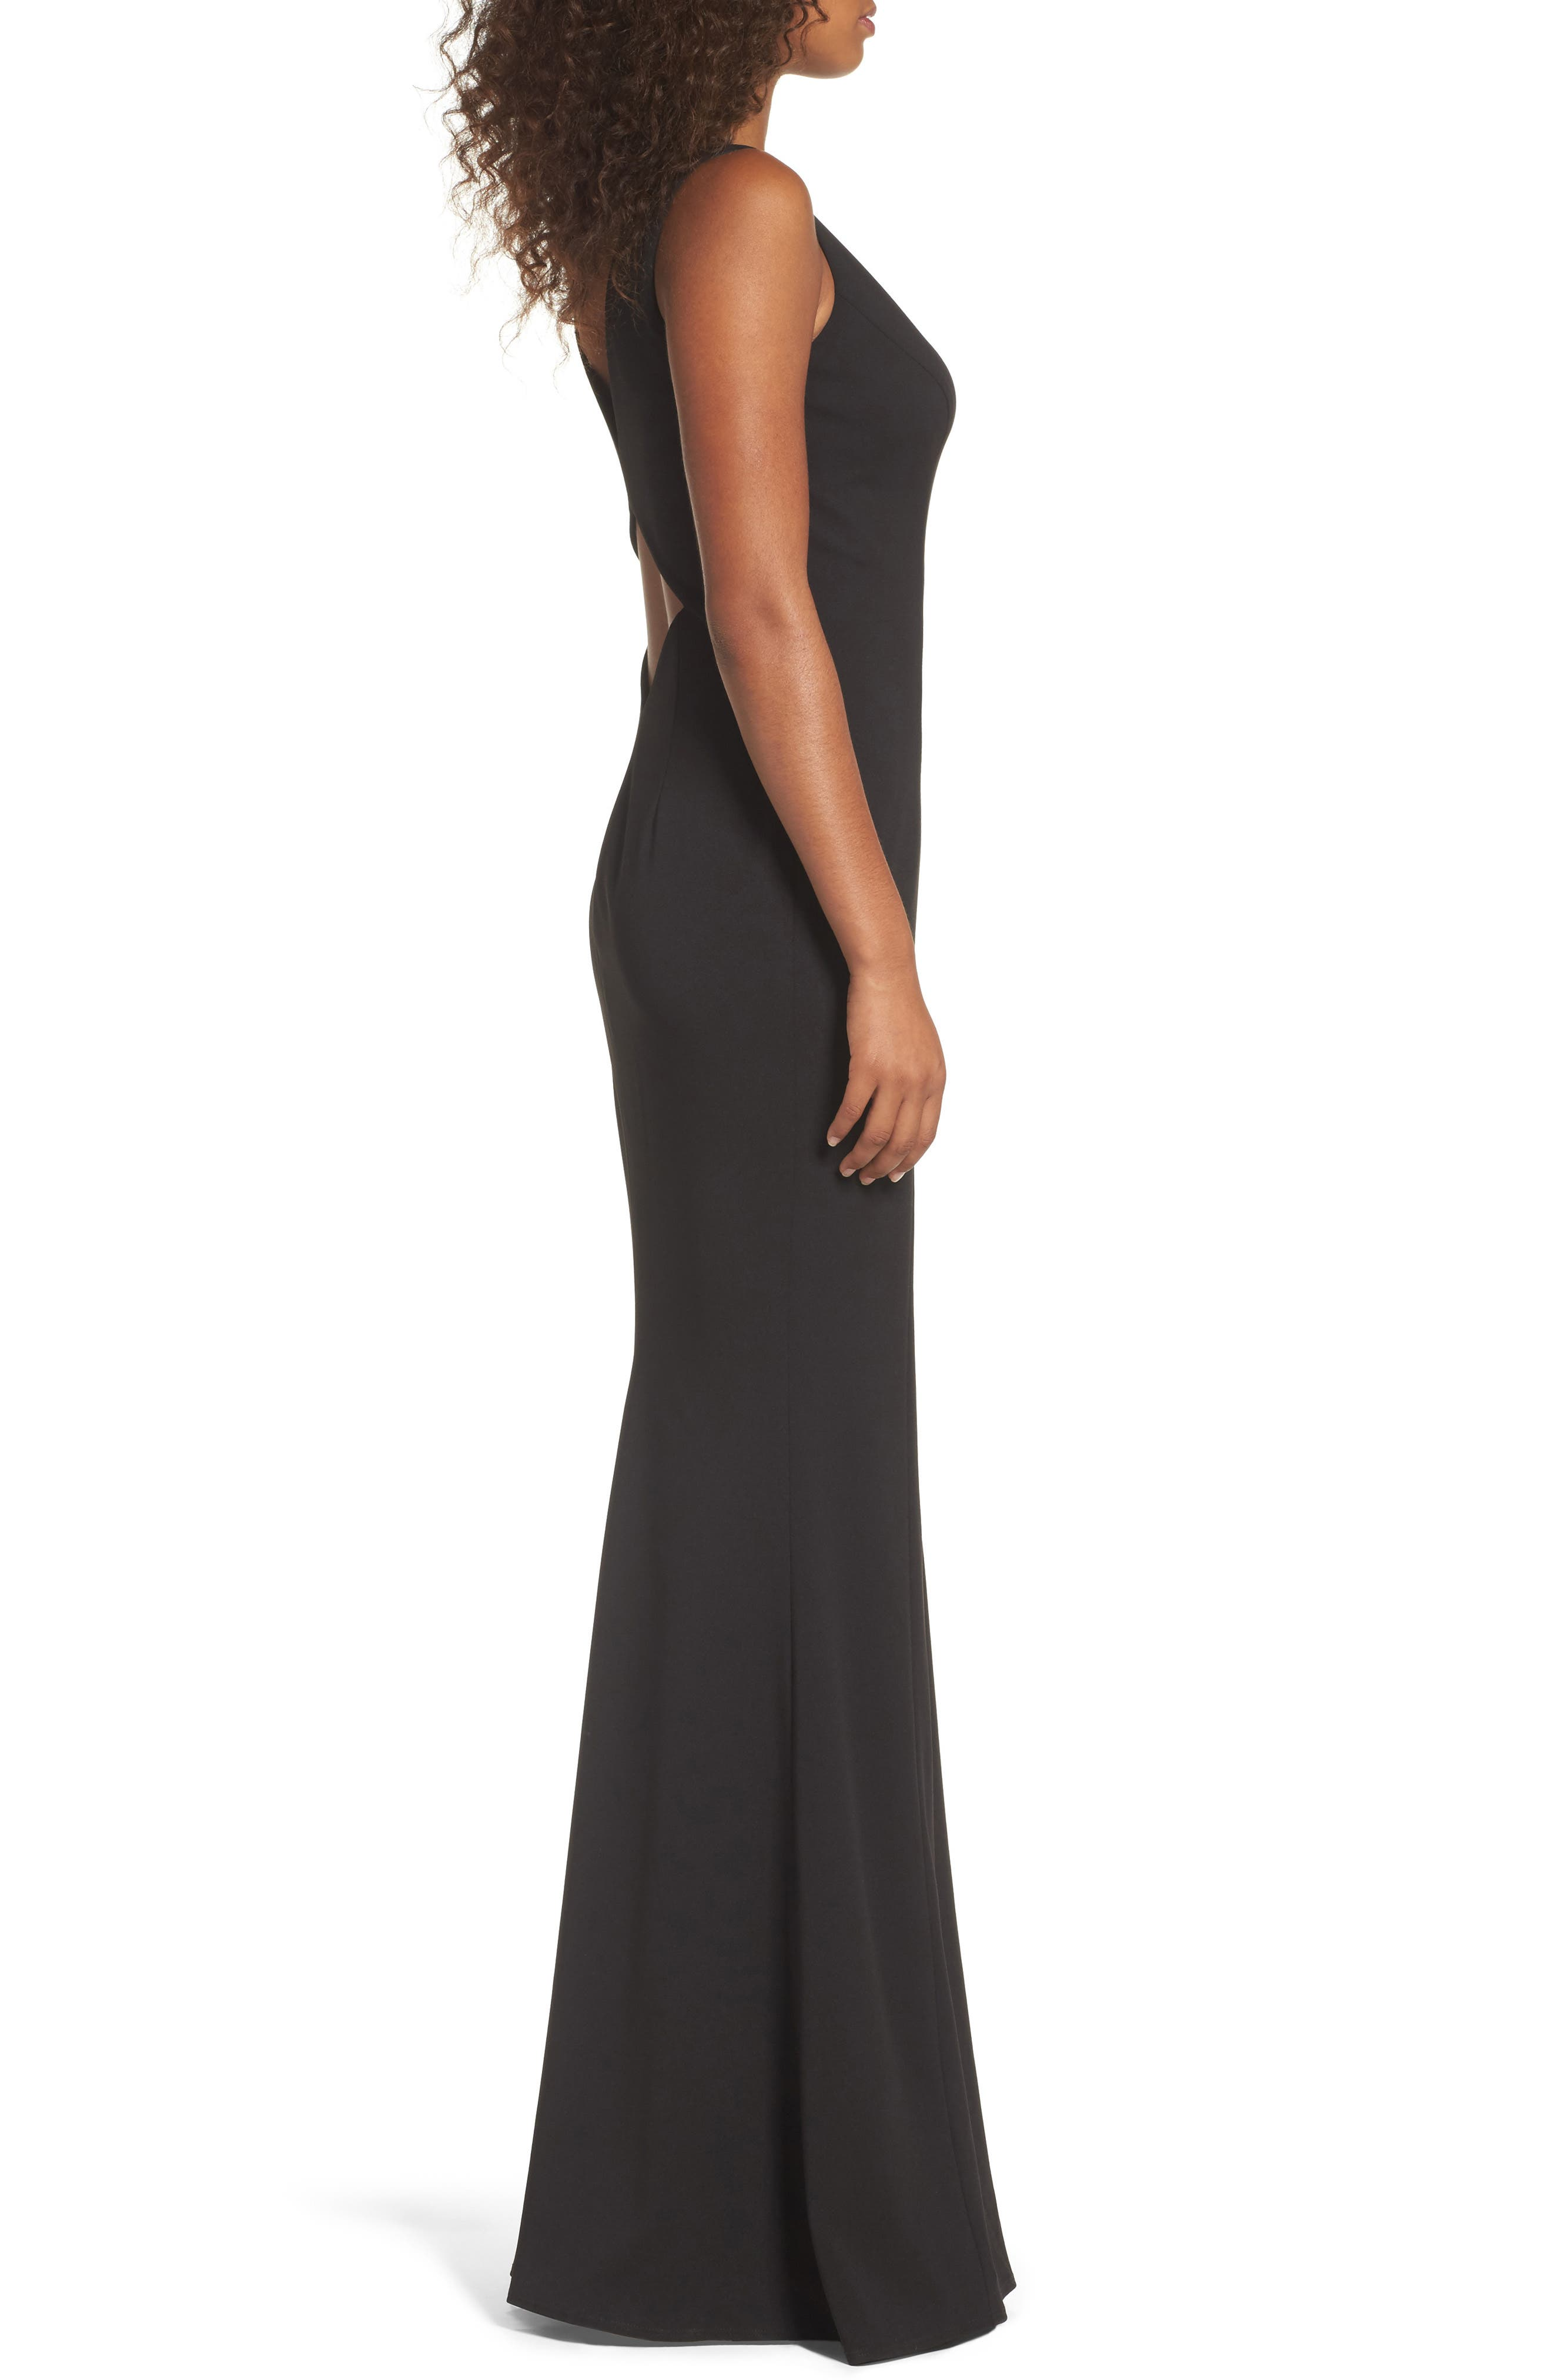 KATIE MAY,                             Mischka V-Neck Crepe Gown,                             Alternate thumbnail 3, color,                             BLACK